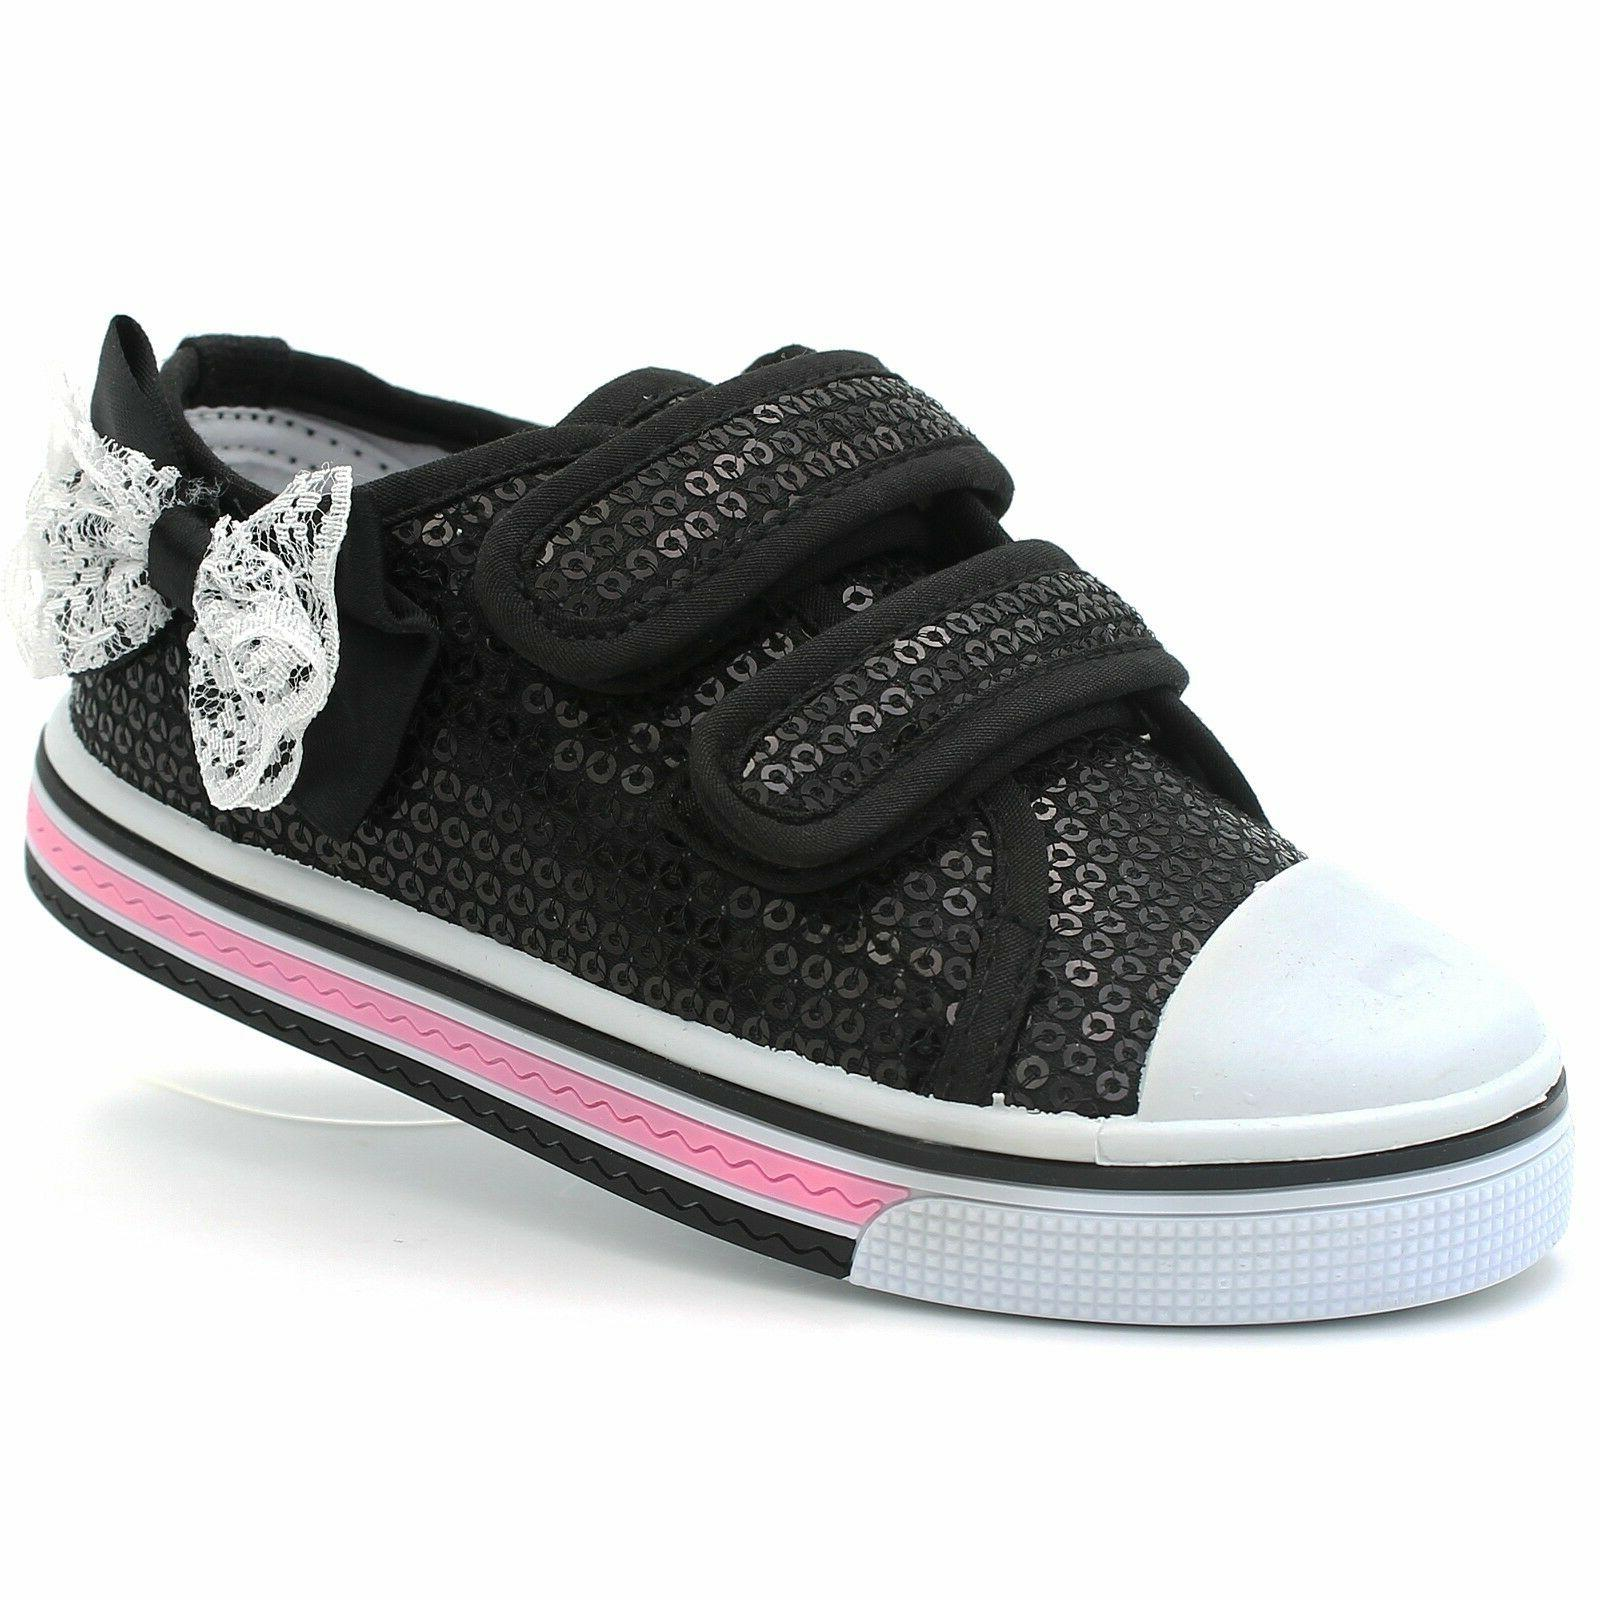 Girls Toddler Canvas Baby Sole